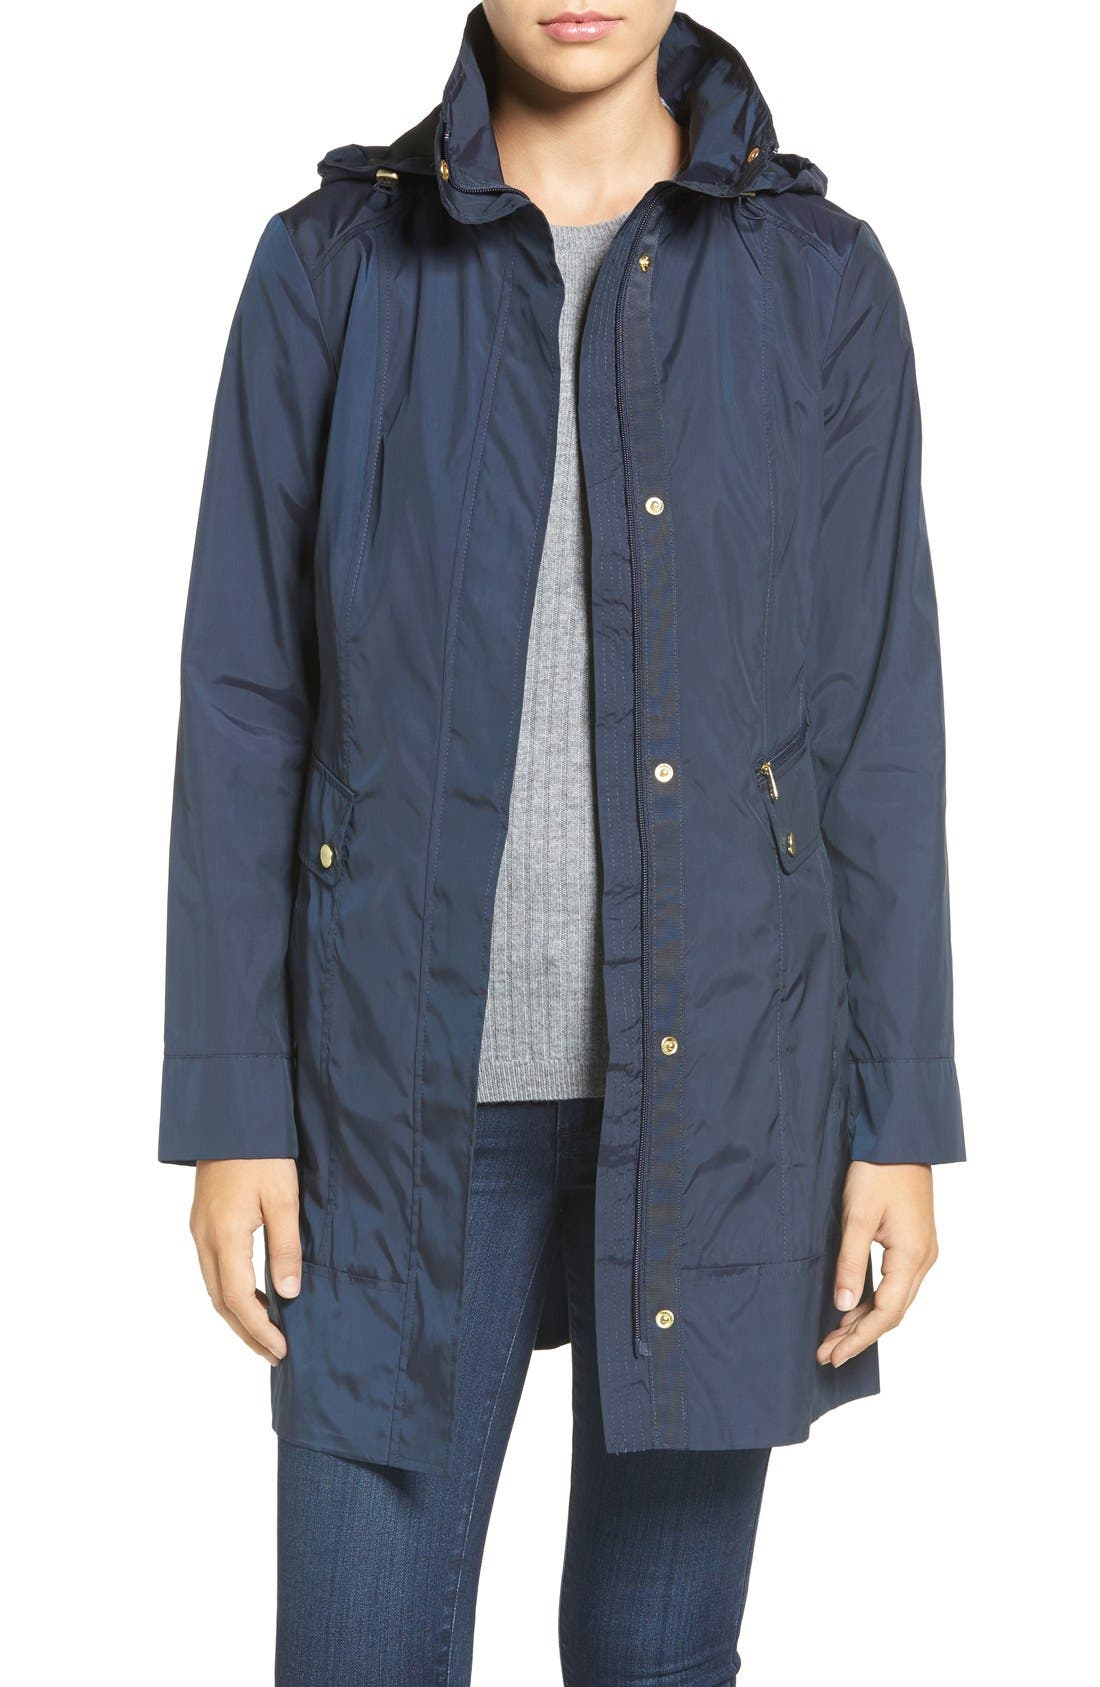 Alternate Image 1 Selected - Cole Haan Signature Back Bow Packable Hooded Raincoat (Regular & Petite)